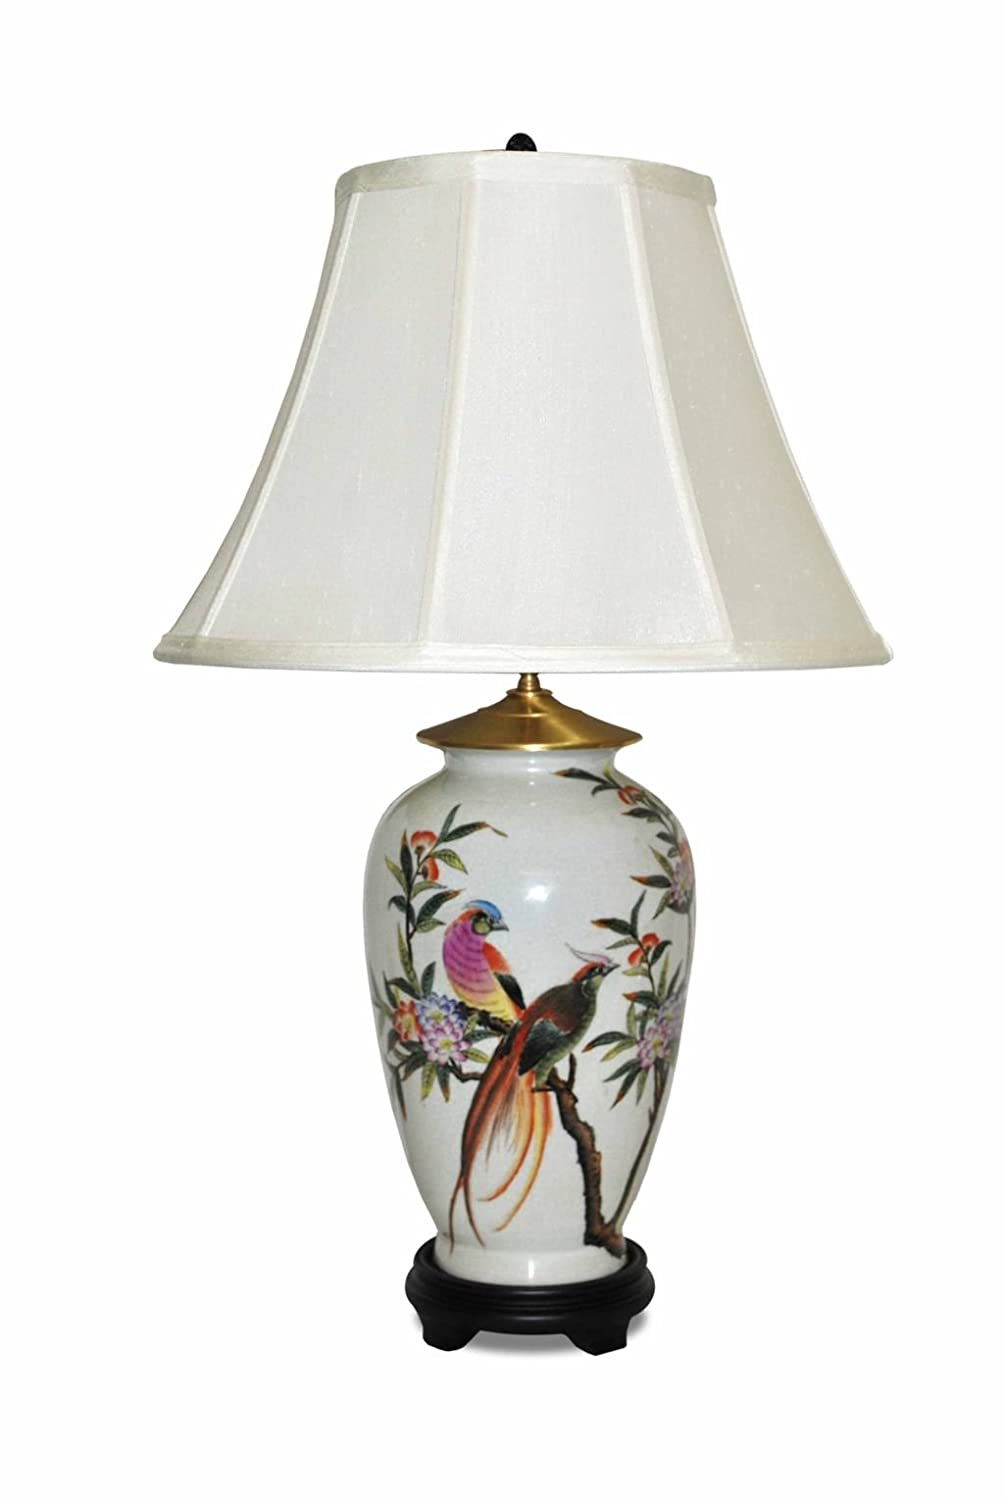 Royal Phoenix Porcelain Table Lamp Wshade Home Improvement